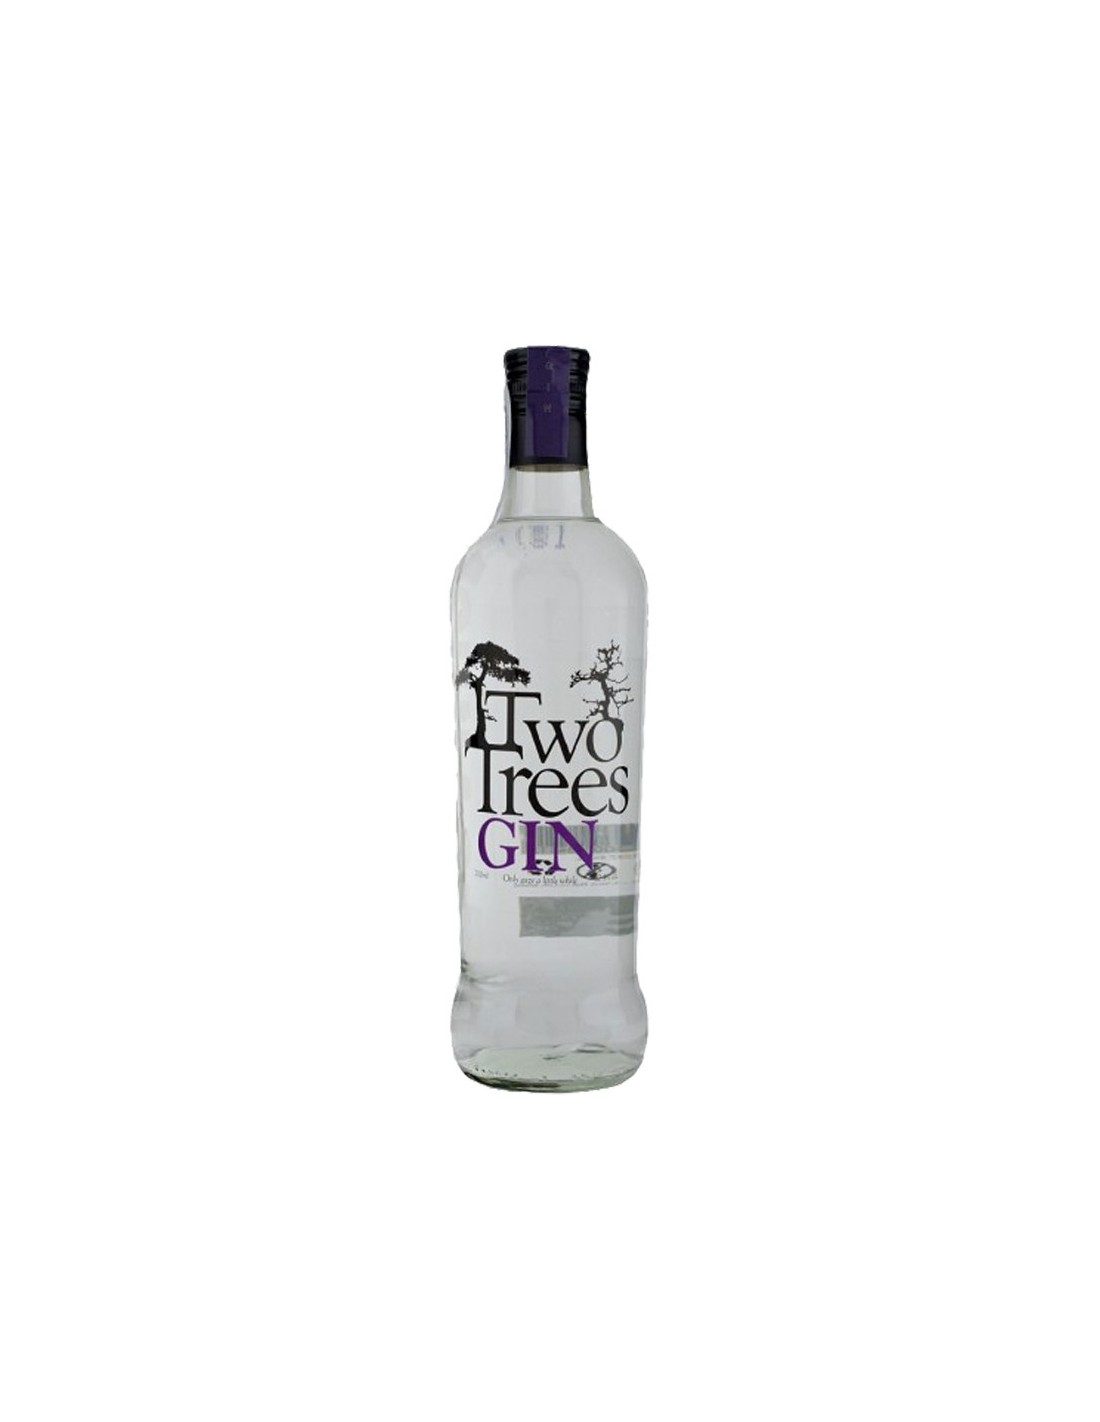 Gin Two Trees 37.5% alc., 0.7L